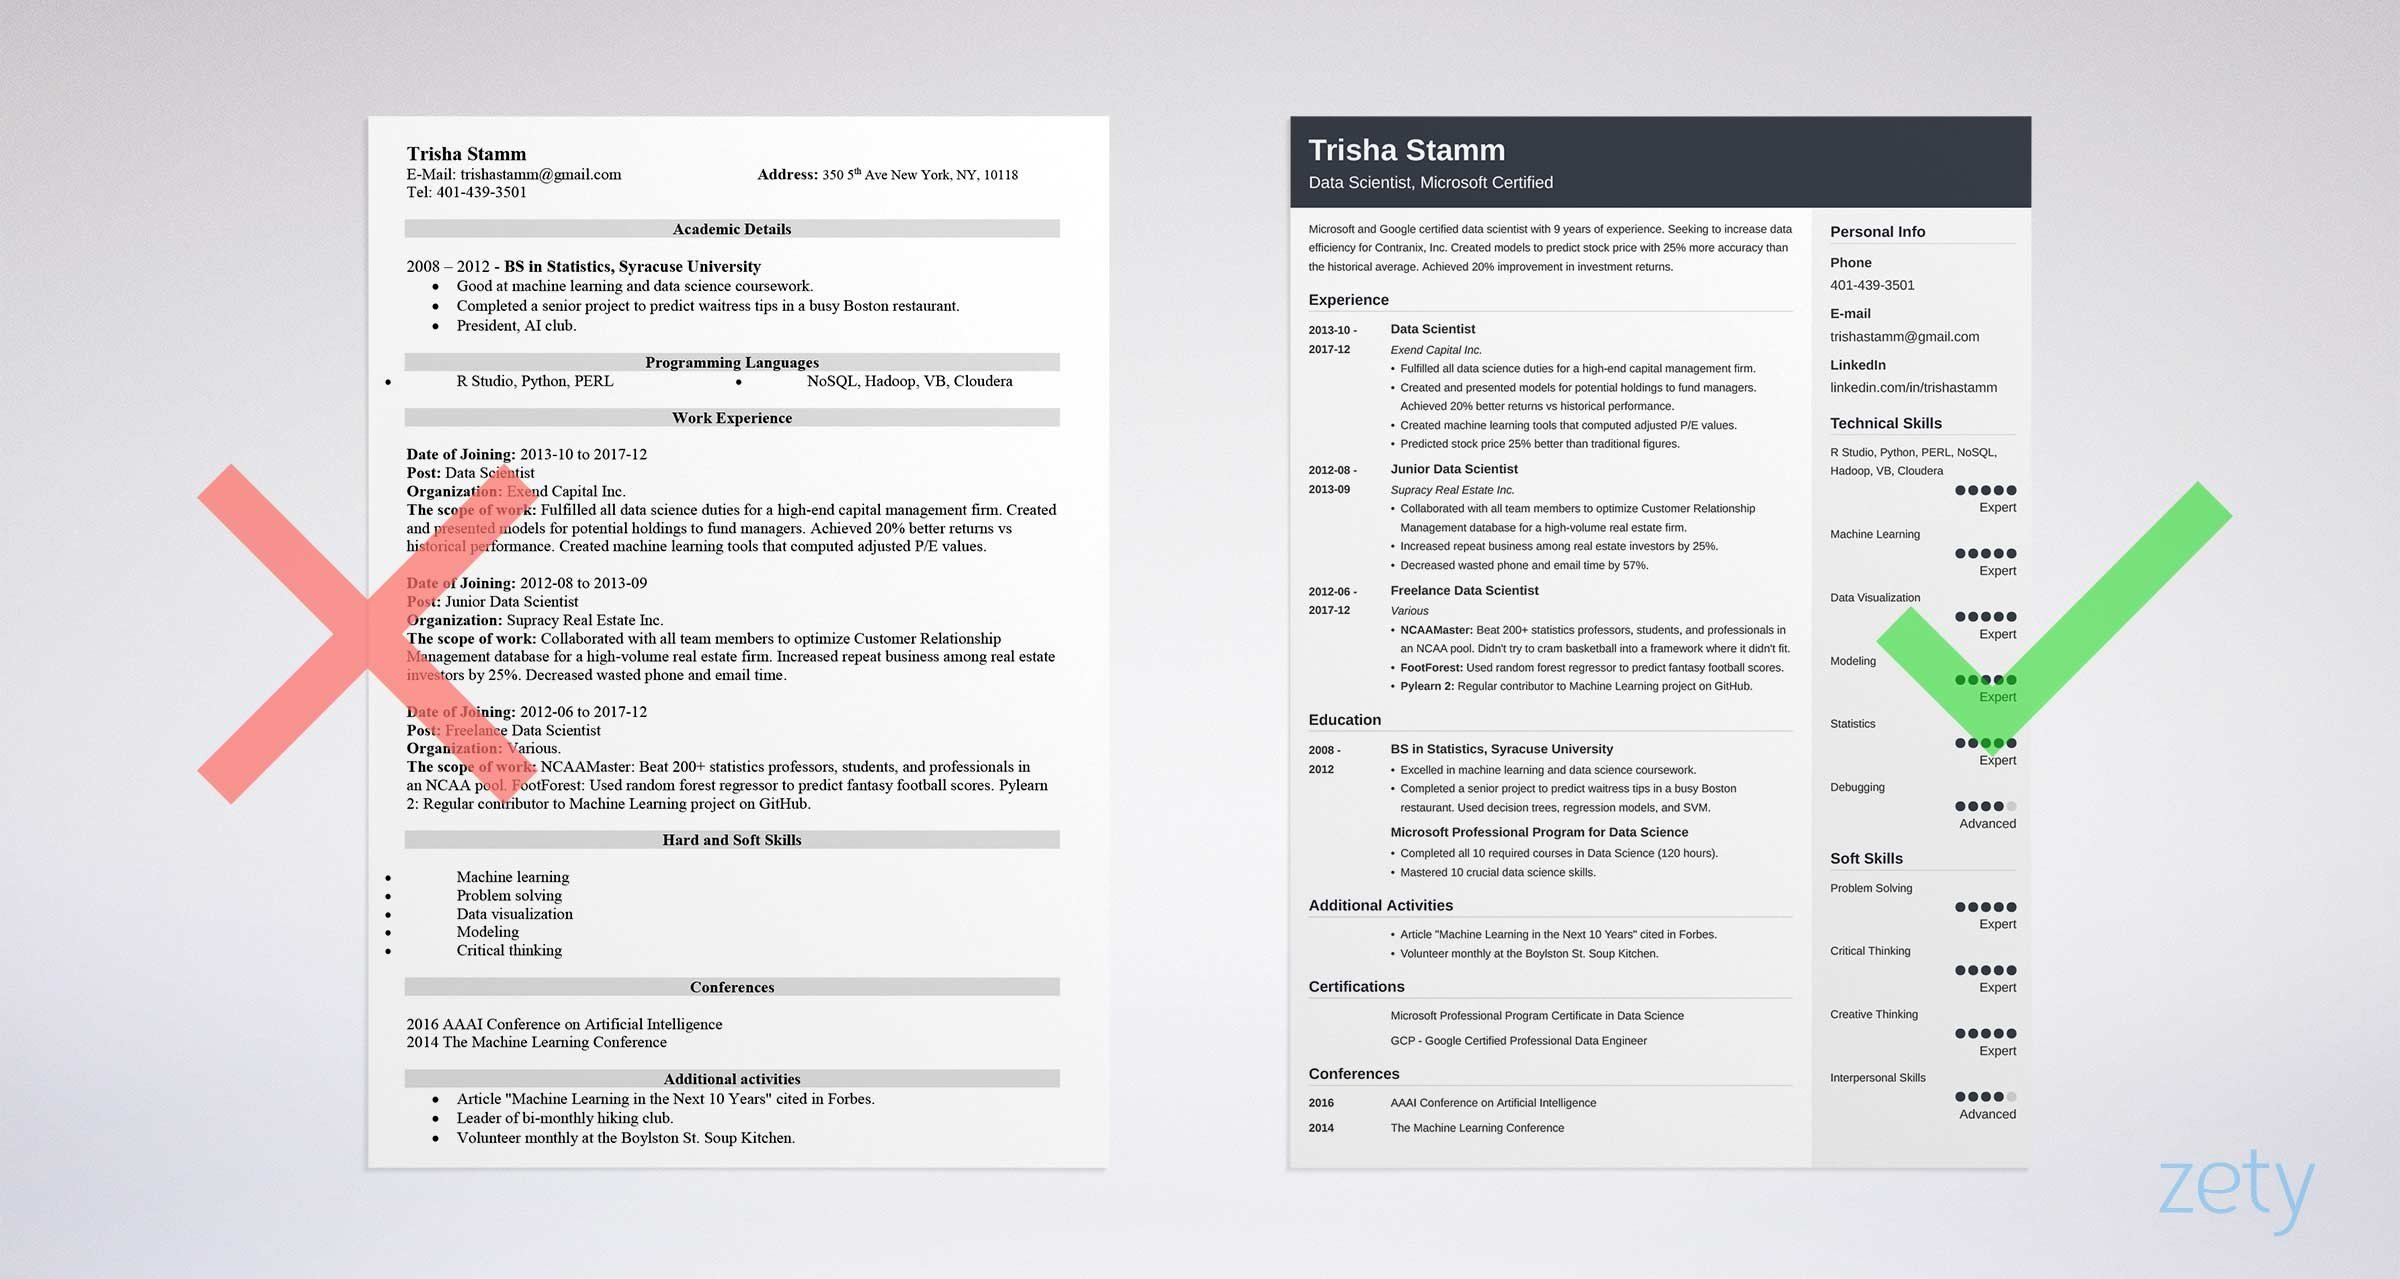 data scientist resume sample template driven guide fresher licenses and certifications on Resume Data Scientist Fresher Resume Sample